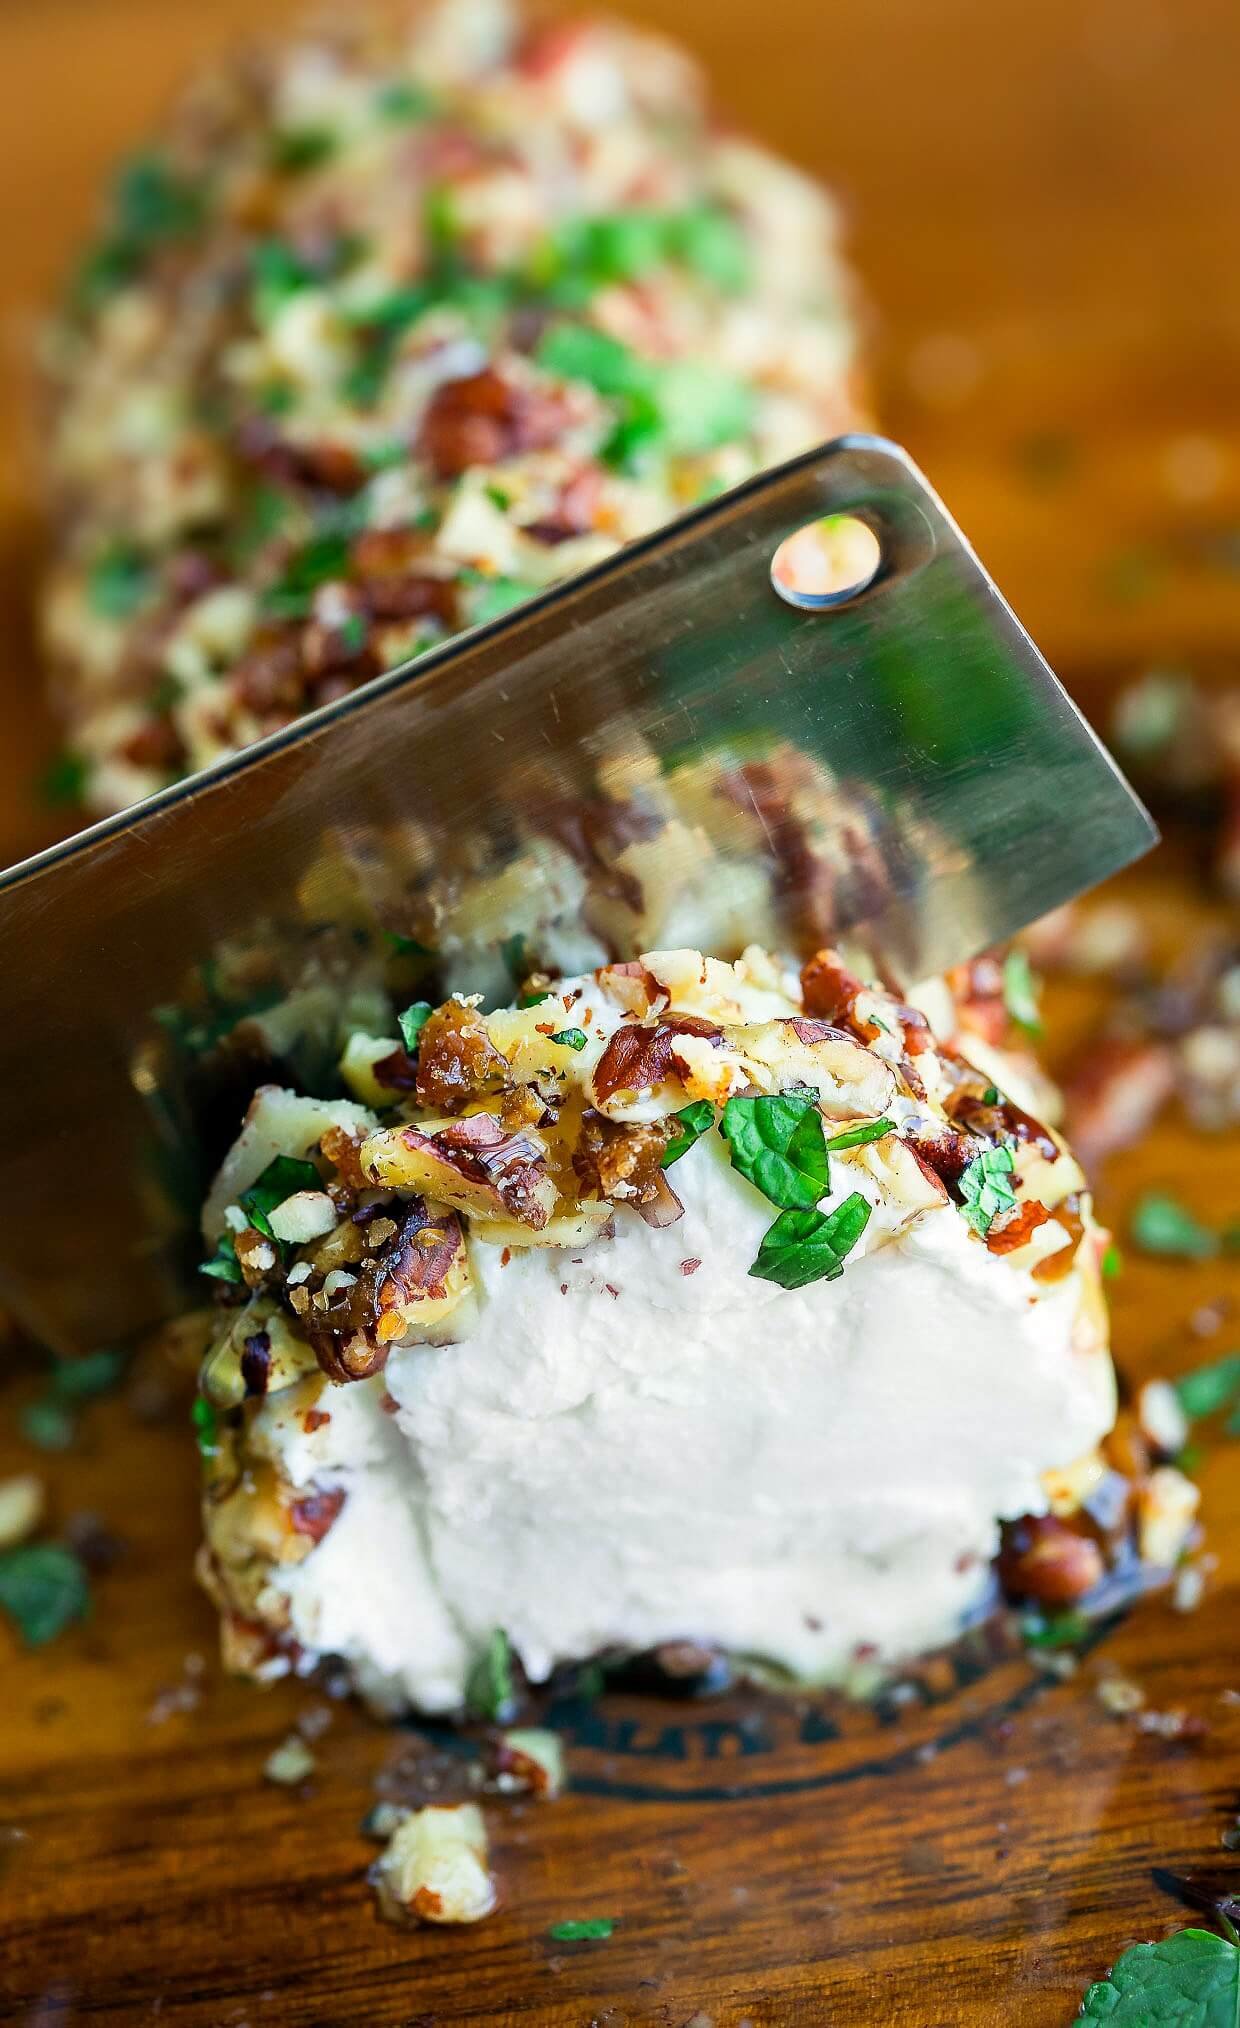 This tasty Maple Pecan Goat Cheese Log will add some savory sweetness and a whole lot of deliciousness to your holiday appetizer spread. Ready in minutes!